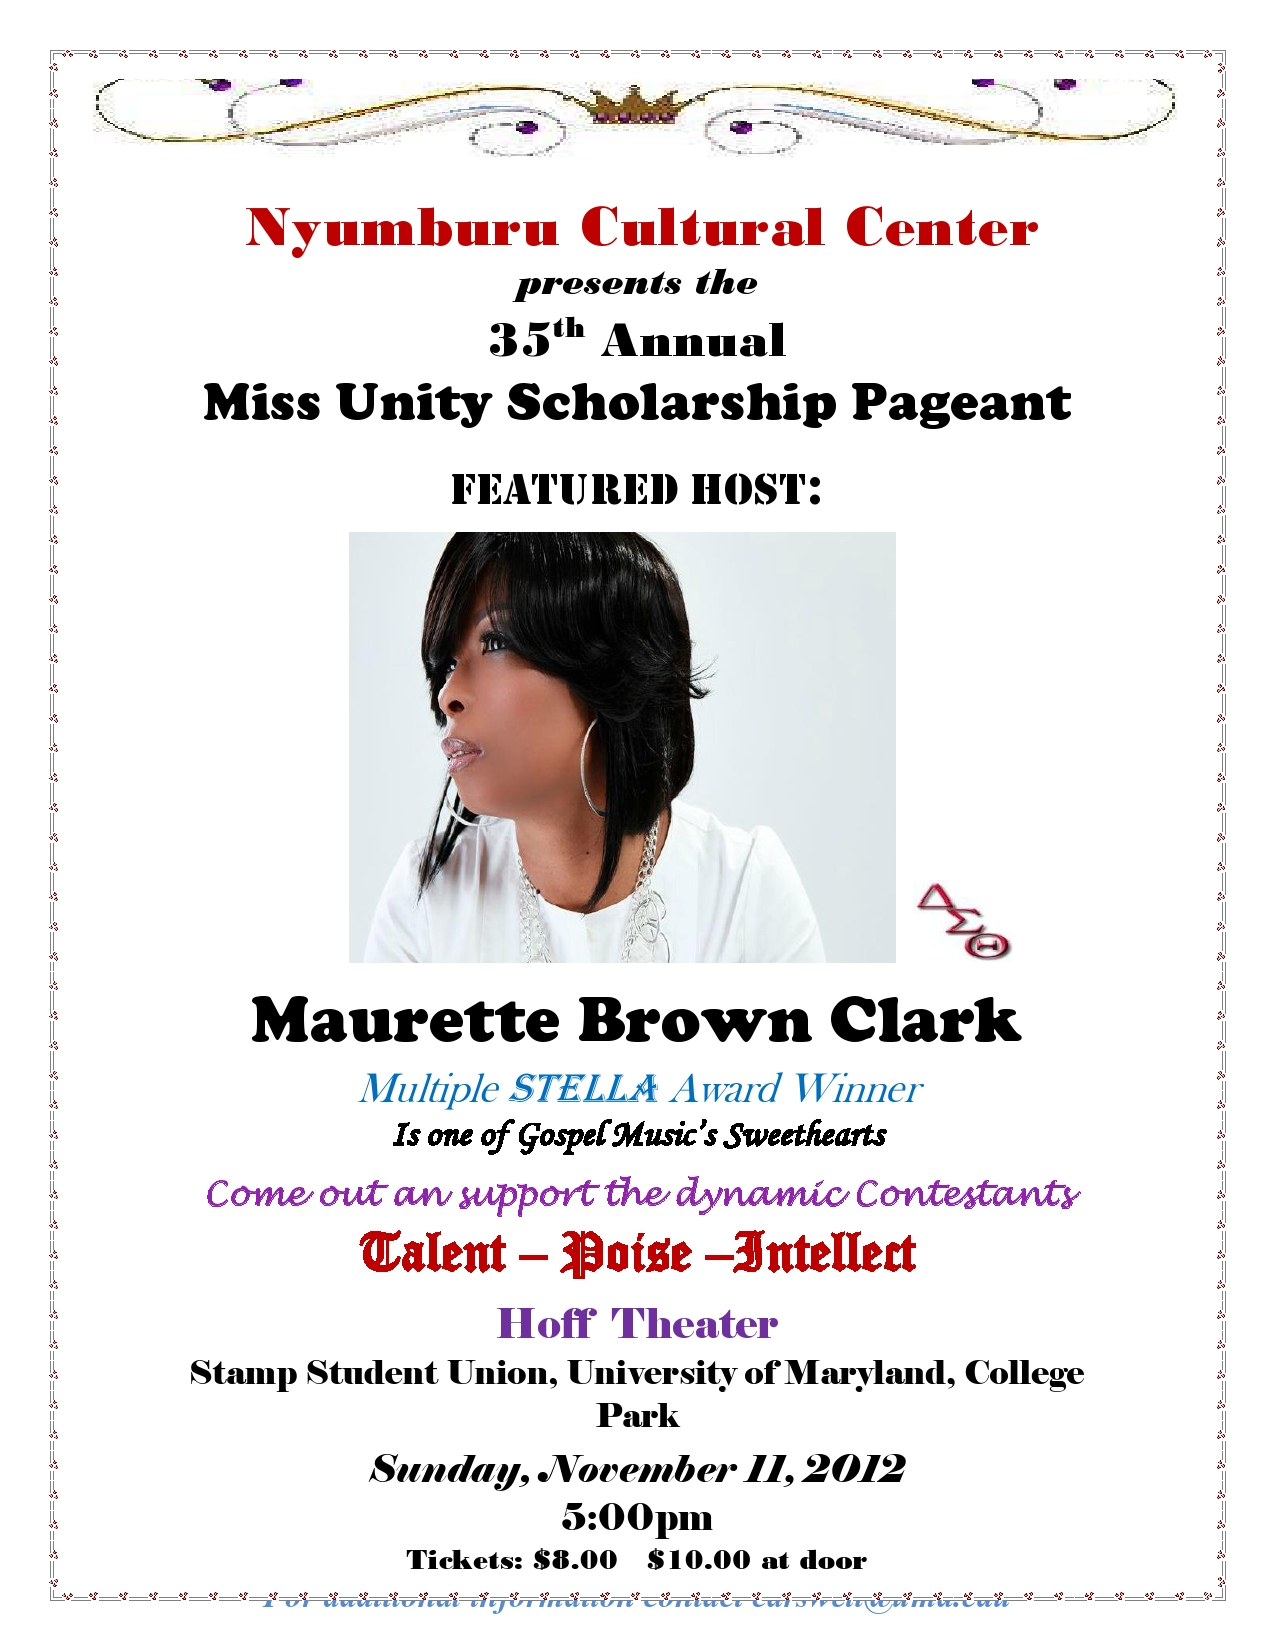 Miss Unity Pageant 2012 Flyer